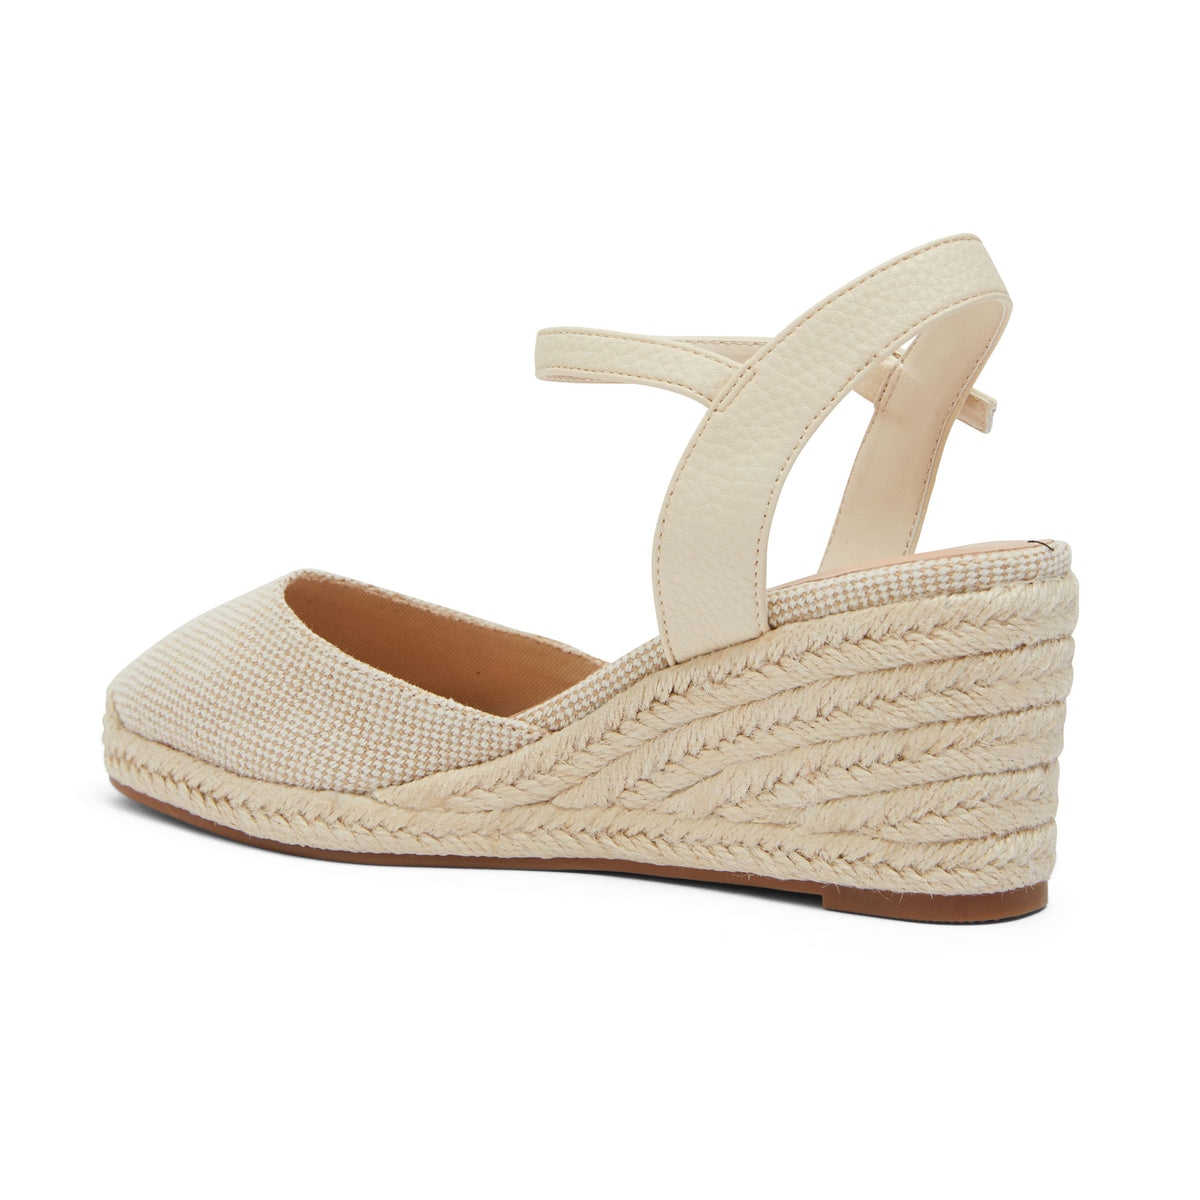 Santos Espadrille in Natural Fabric